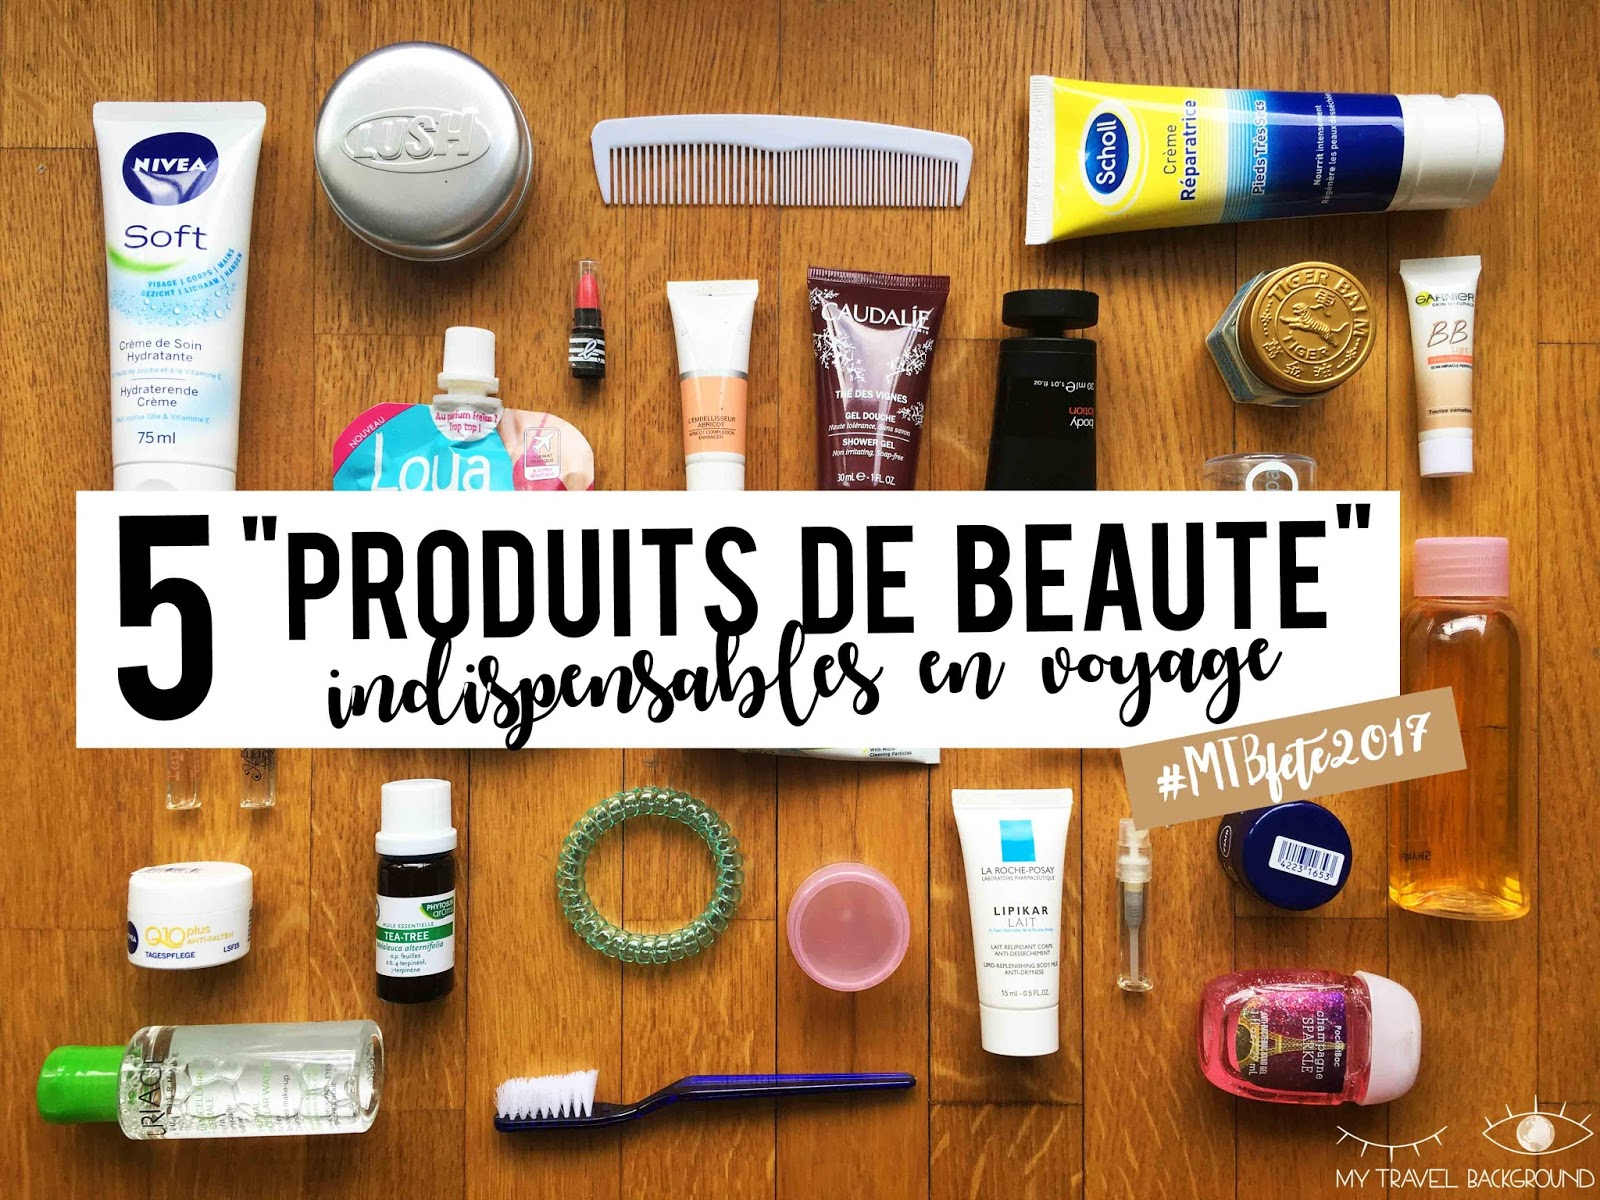 My Travel Background : 5 produits de beauté indispensables en voyage